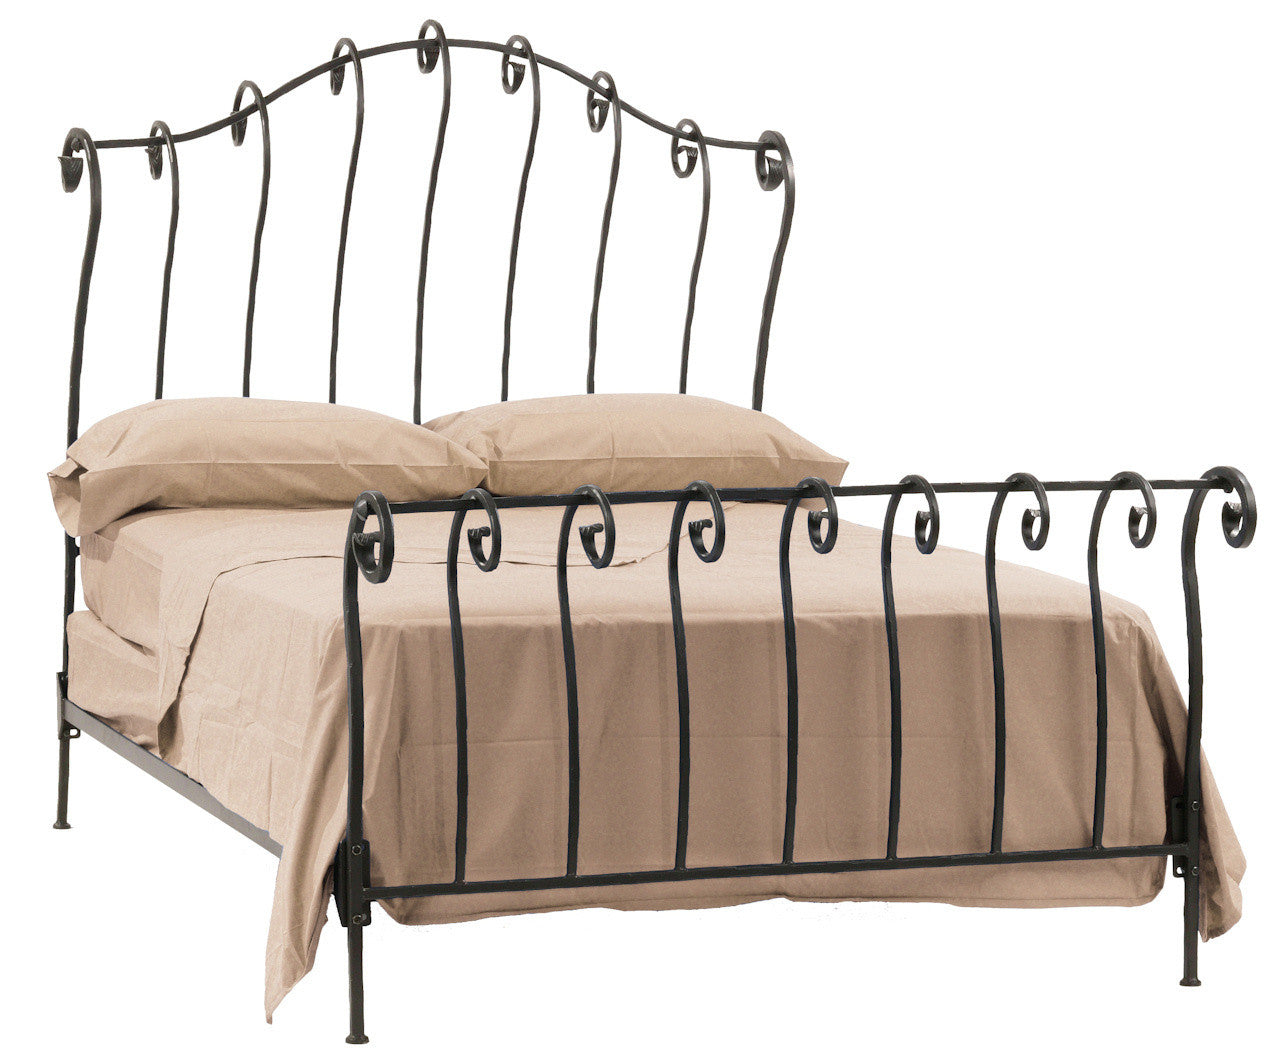 Sleigh King Bed Stratford - Stone County Bed Image